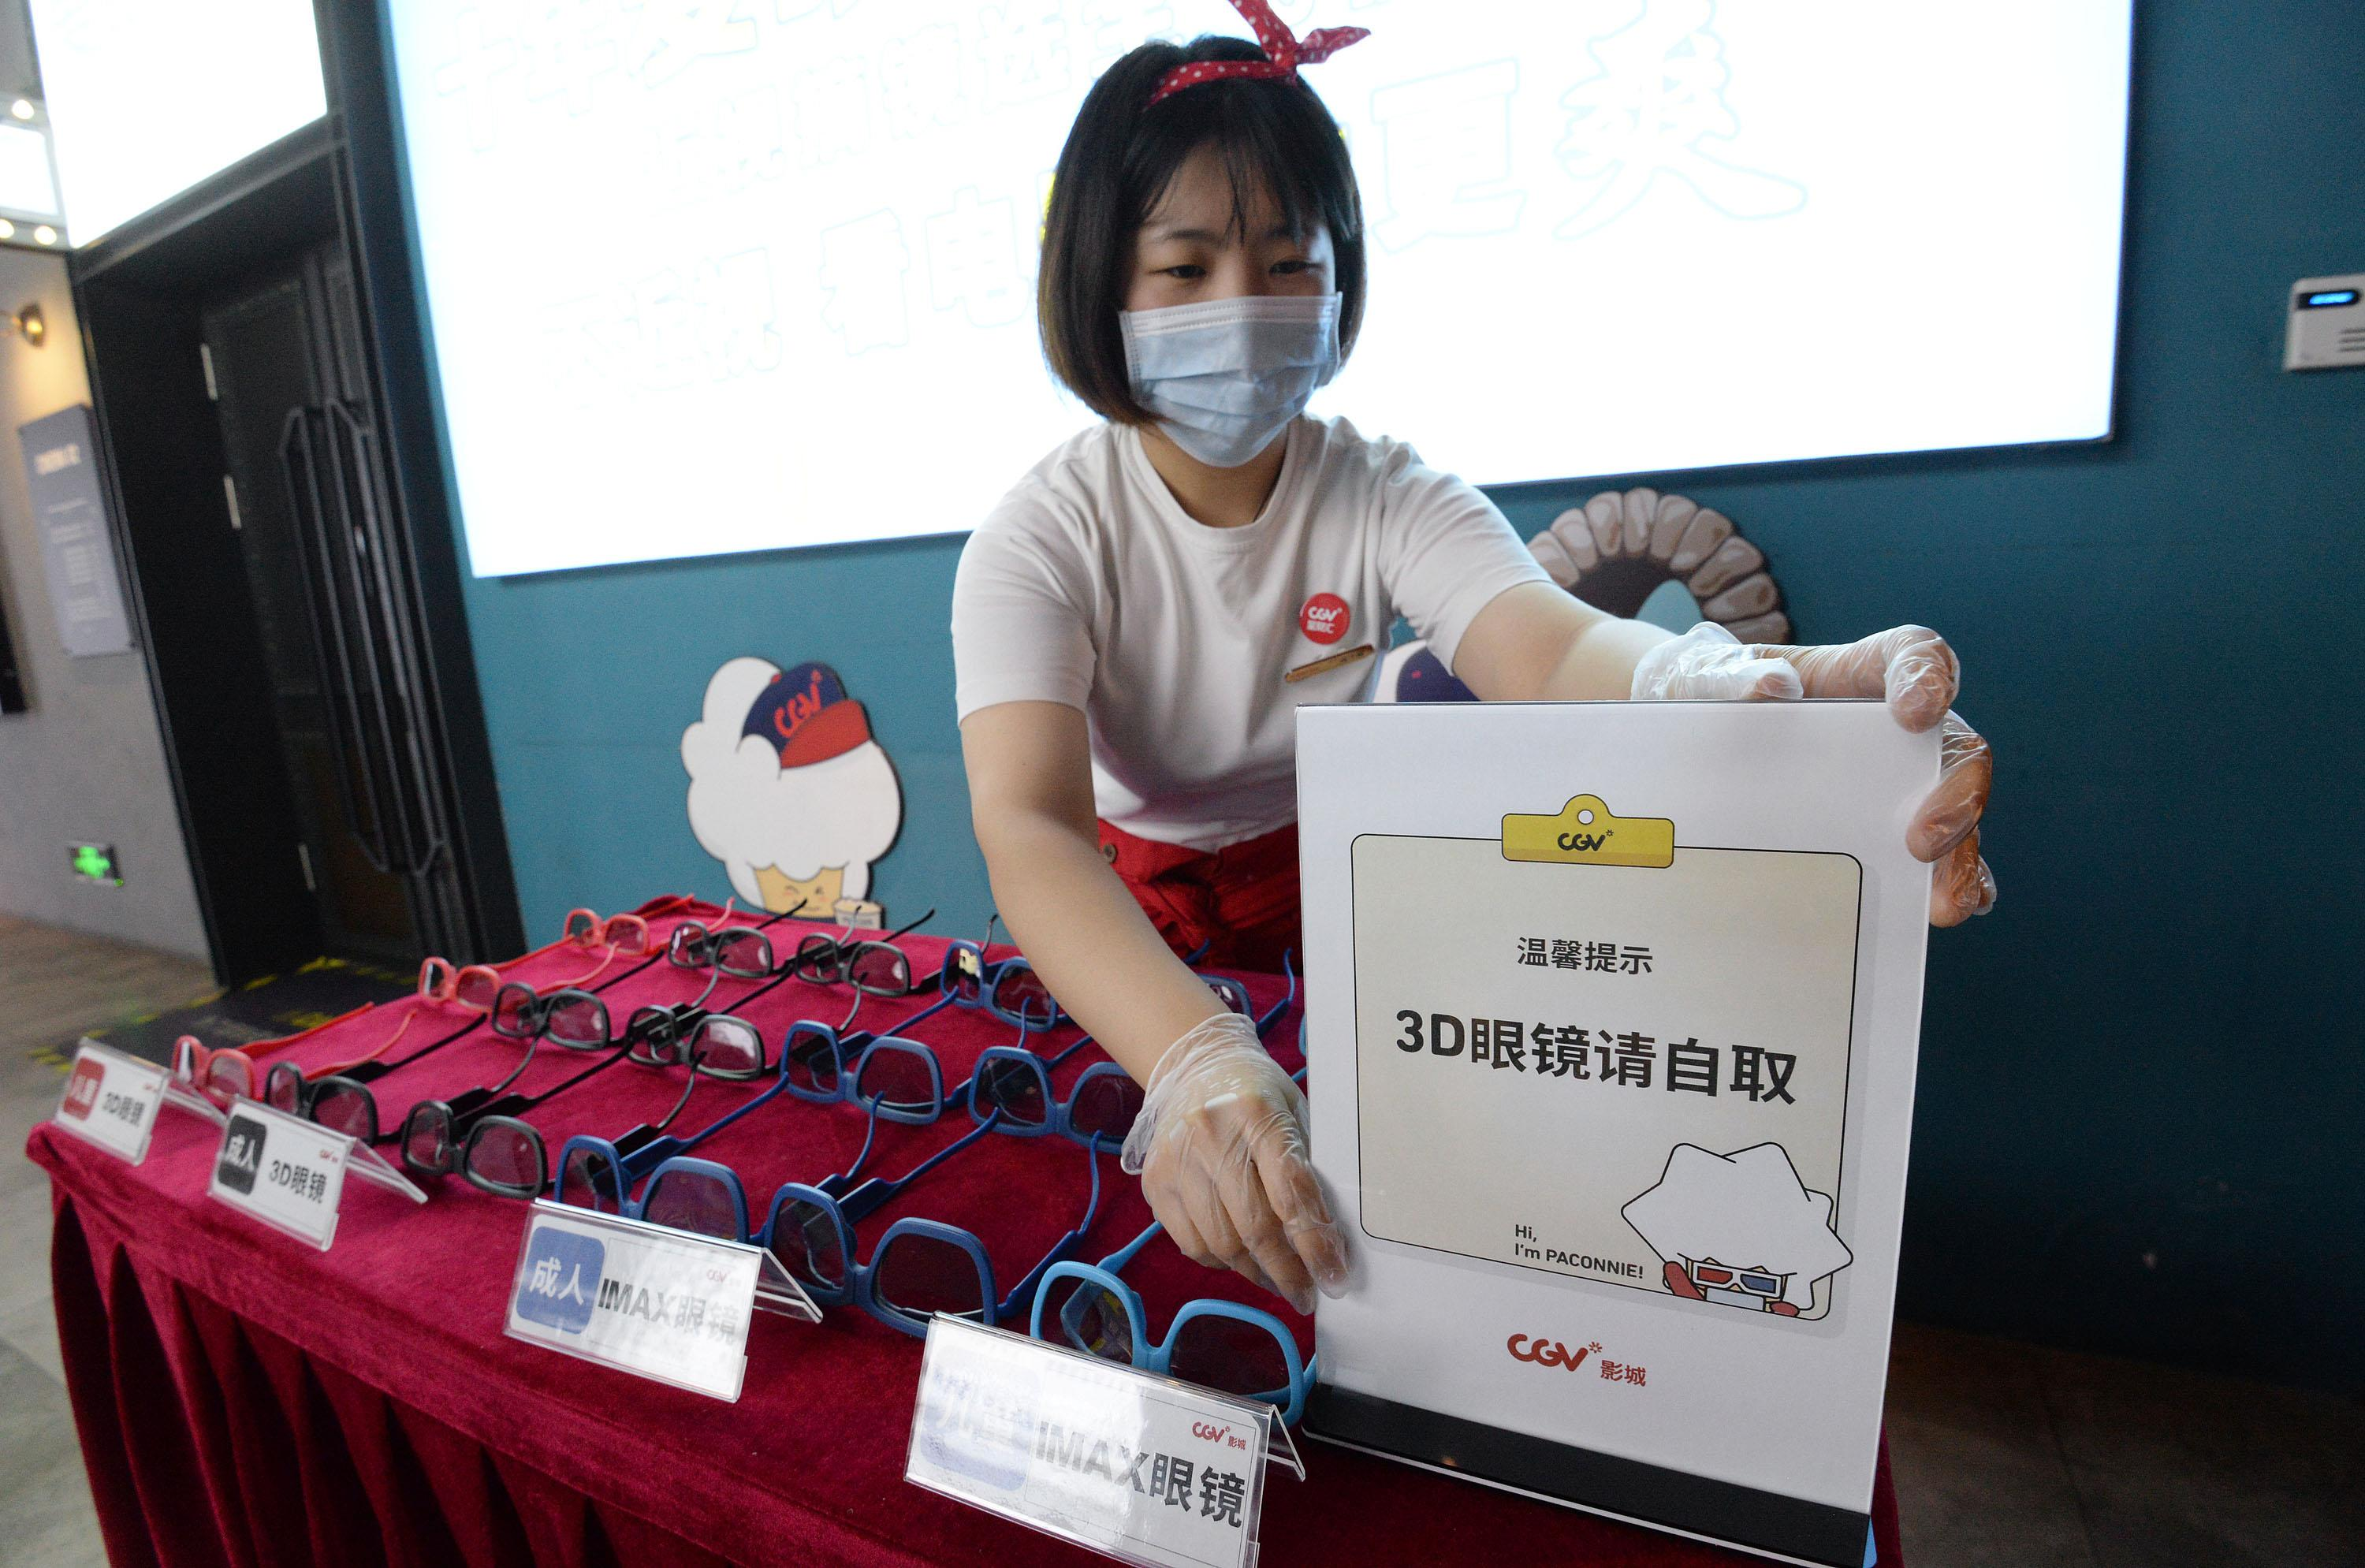 HANDAN, CHINA - JULY 19, 2020 - Staff of a cinema display warm warning signs in Handan, Hebei Province, China, July 19, 2020.- PHOTOGRAPH BY Costfoto / Barcroft Studios / Future Publishing (Photo credit should read Costfoto/Barcroft Media via Getty Images)